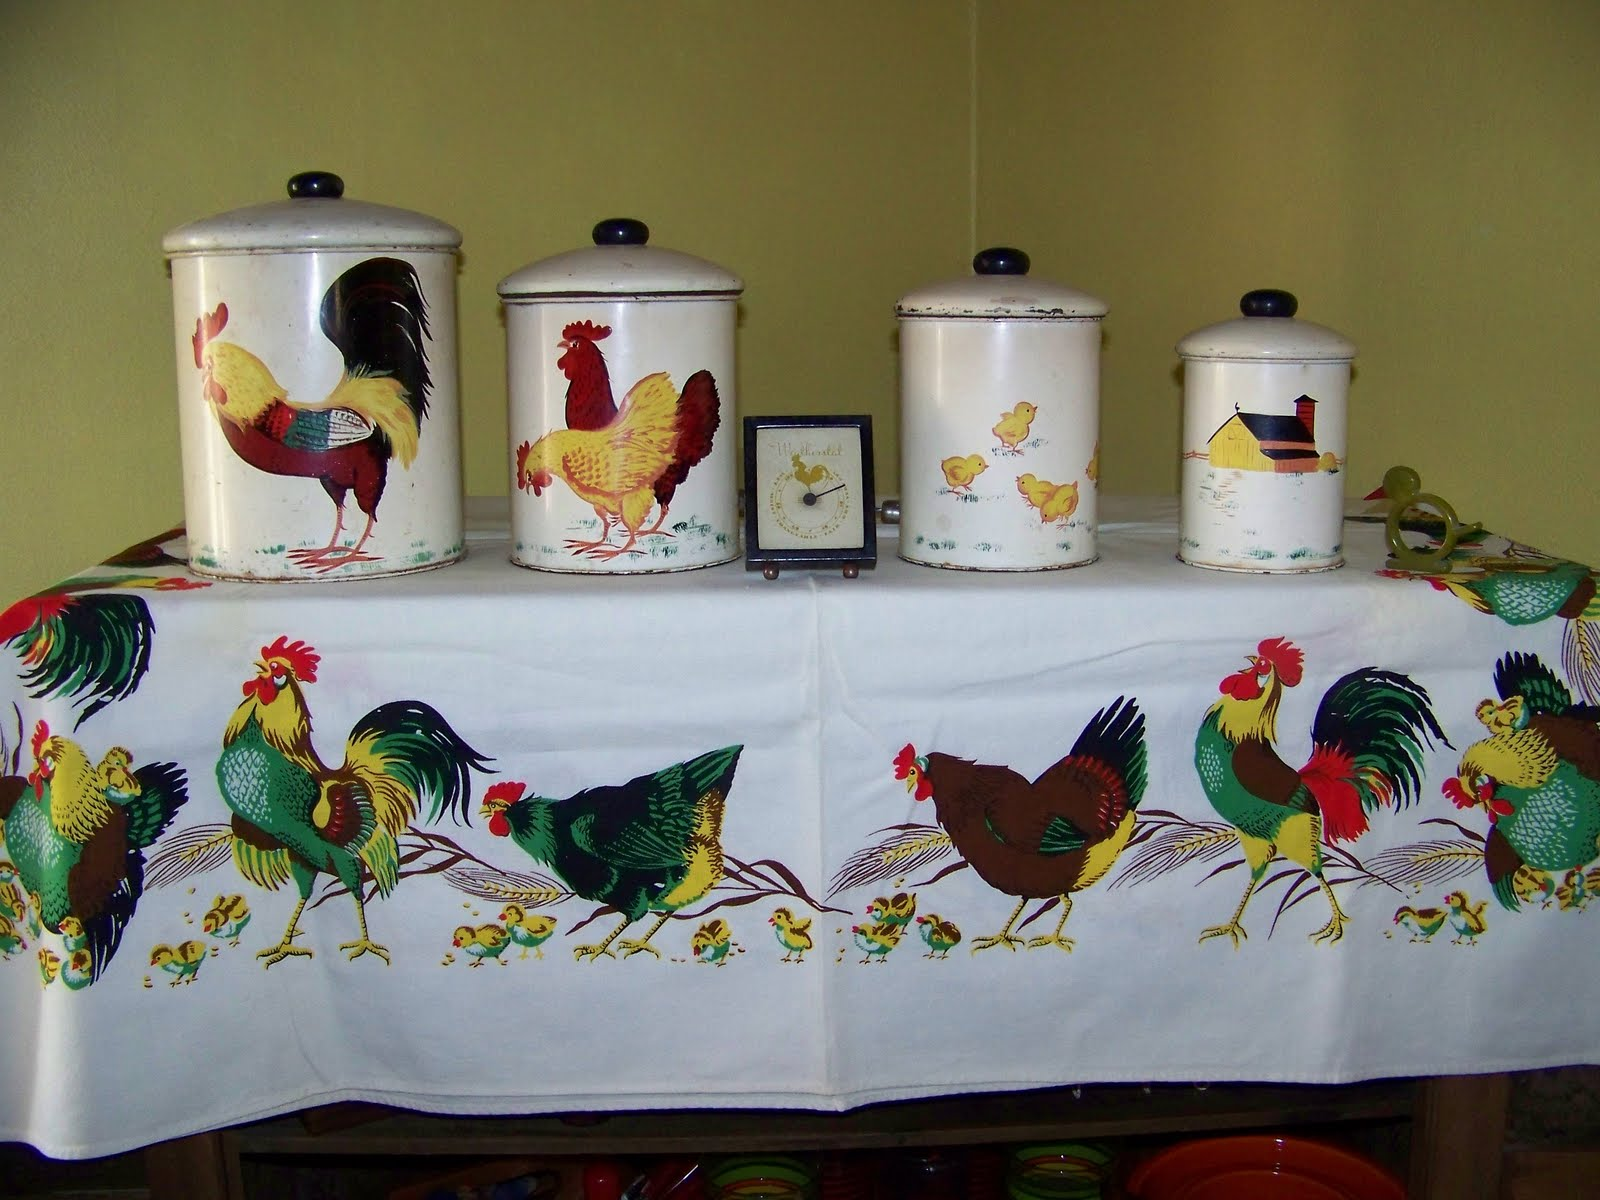 Decorative Chickens For Kitchen C Dianne Zweig Kitsch N Stuff Collecting Rooster And Hen